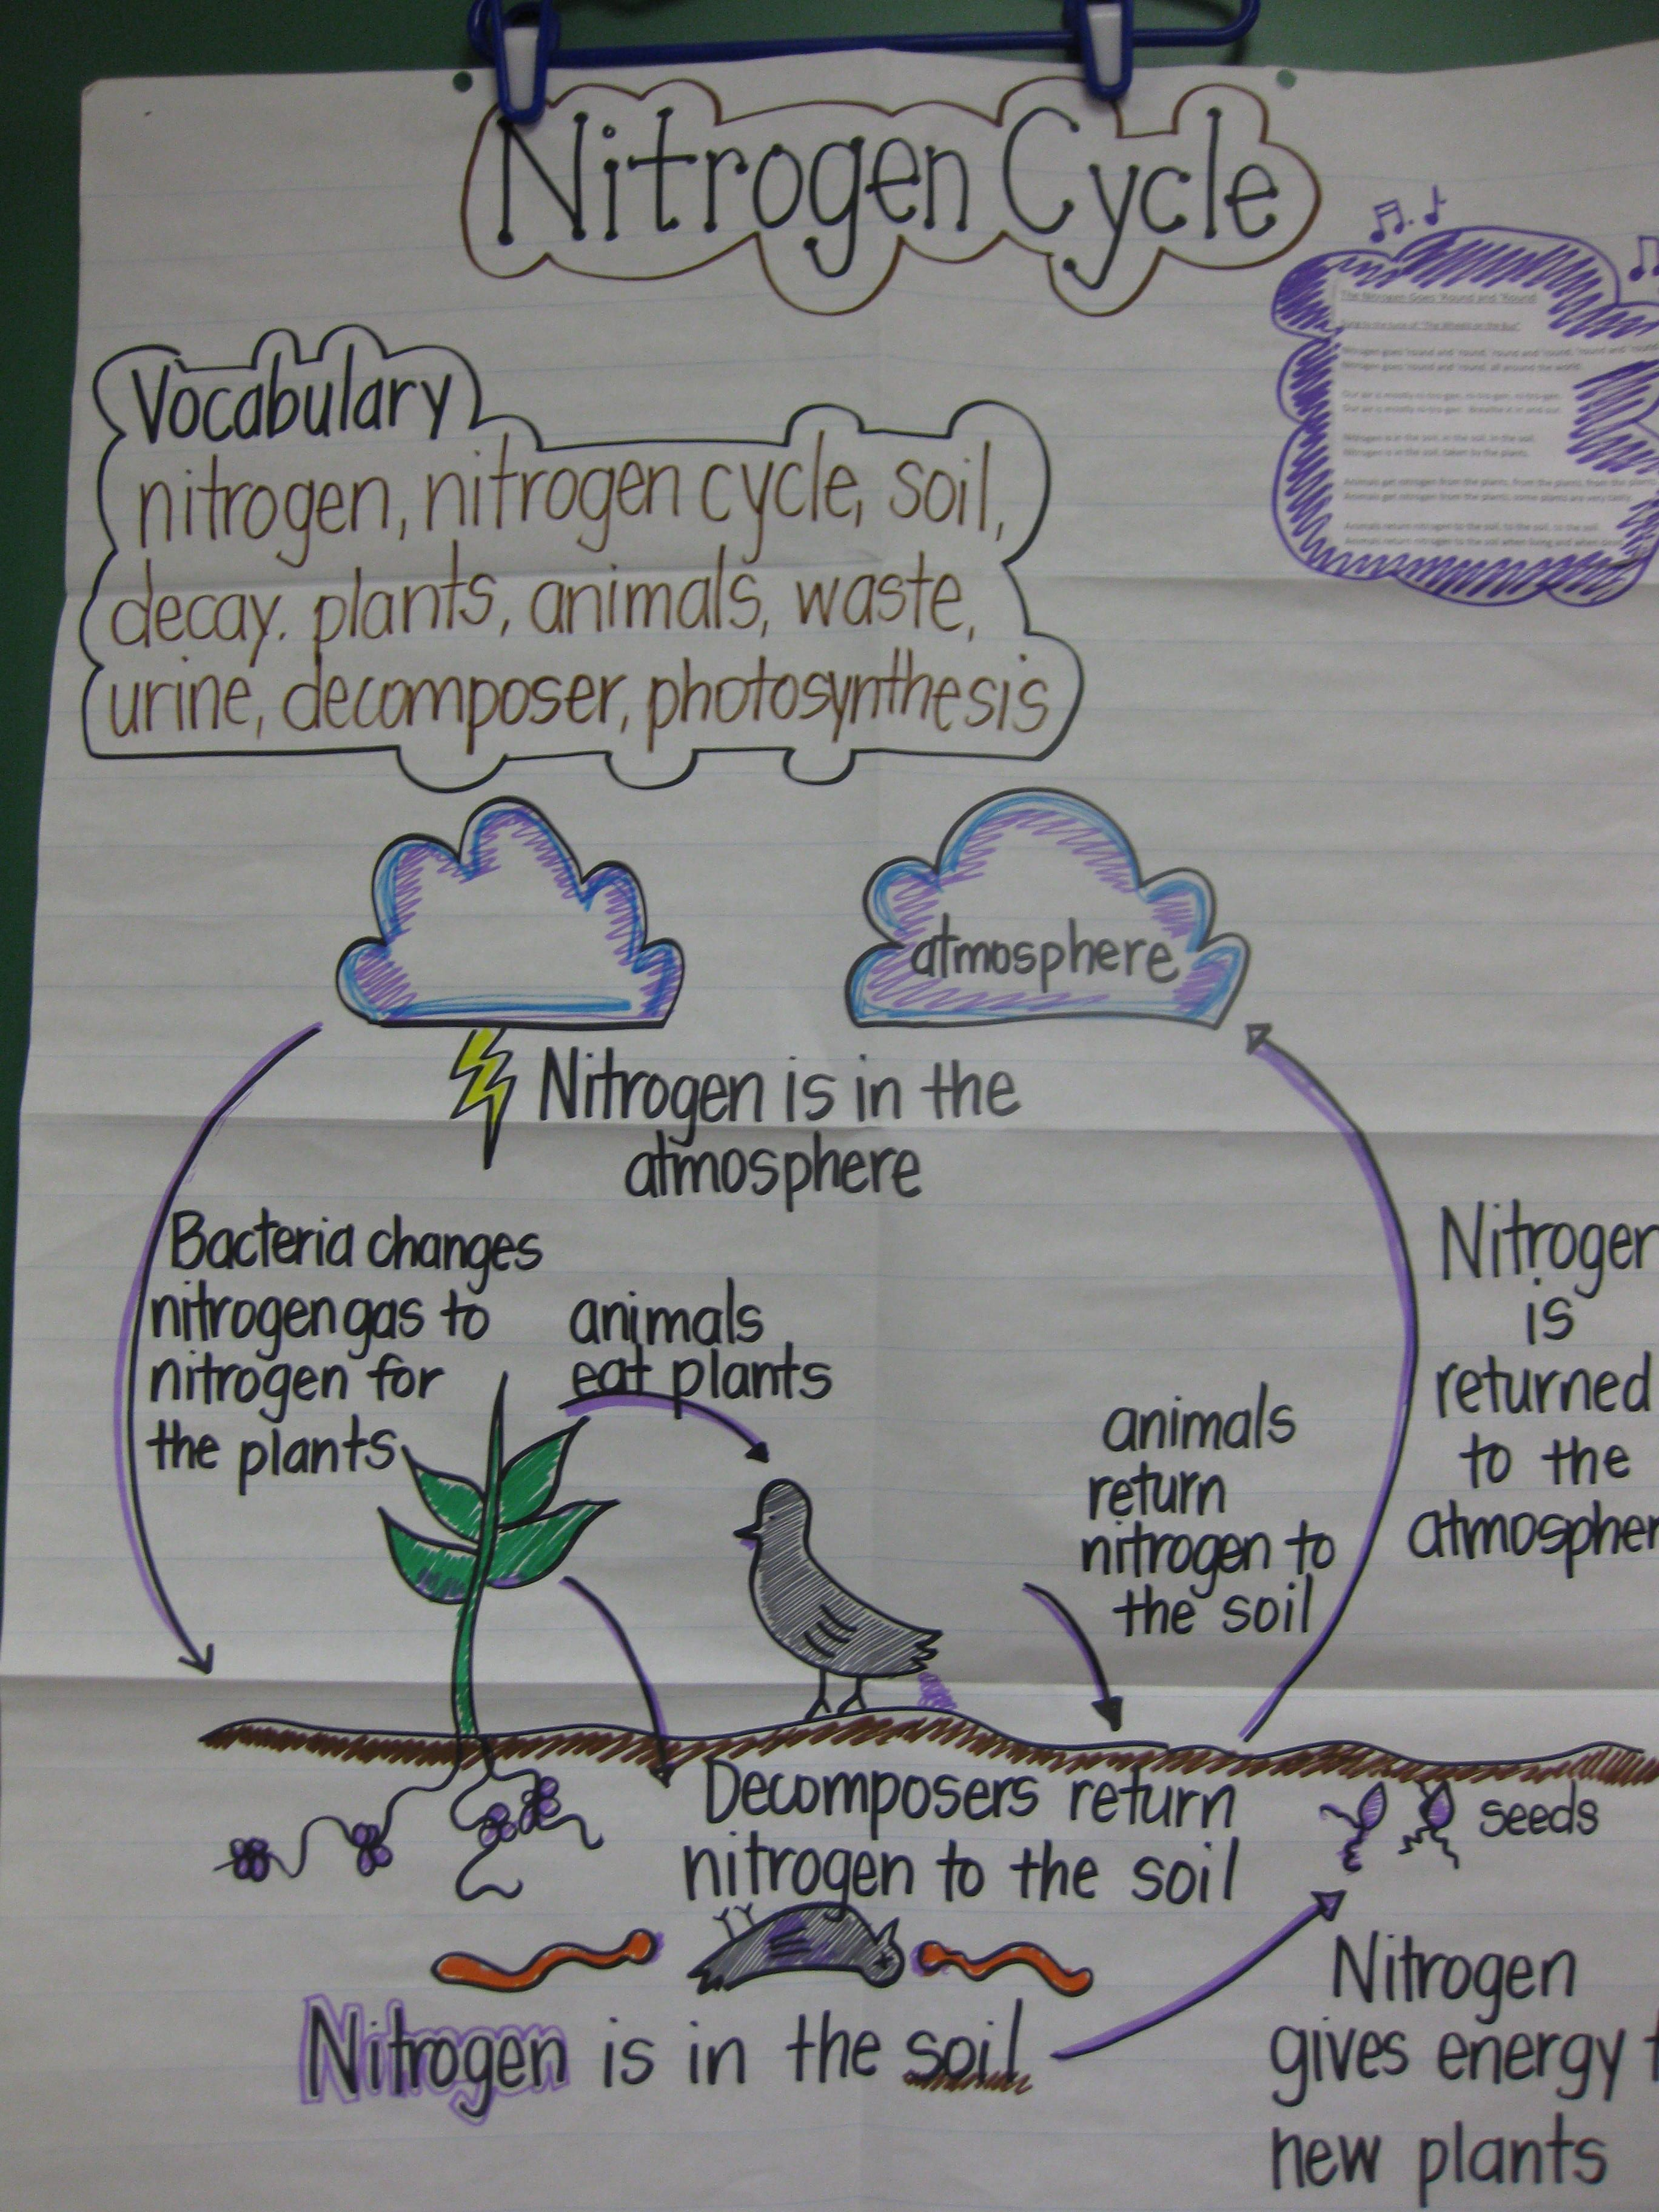 medium resolution of staar review anchor chart i make this one to review the nitrogen cycle with students before the 5th grade science staar test